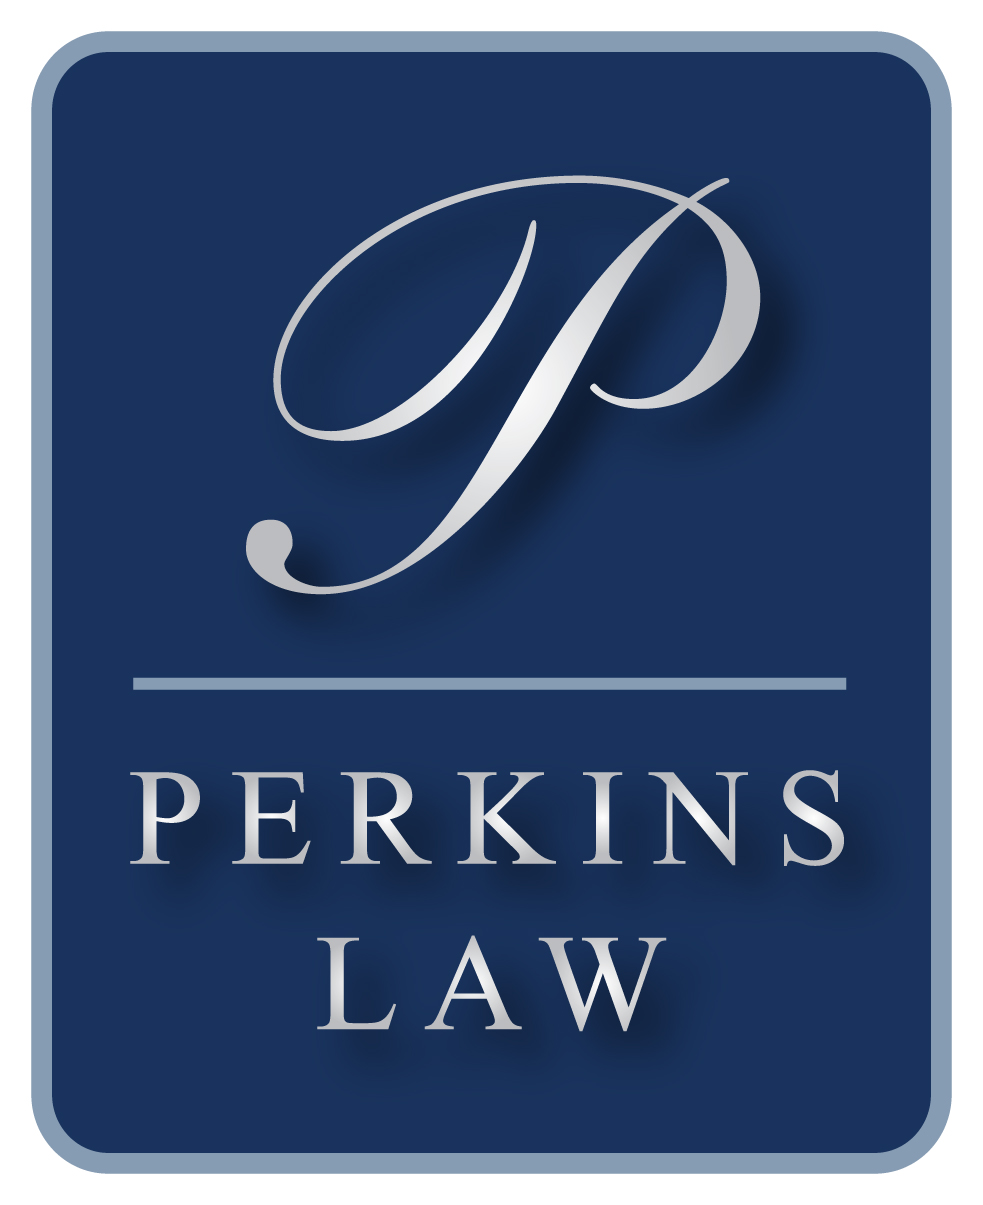 Business logo of Perkins Law, PLLC